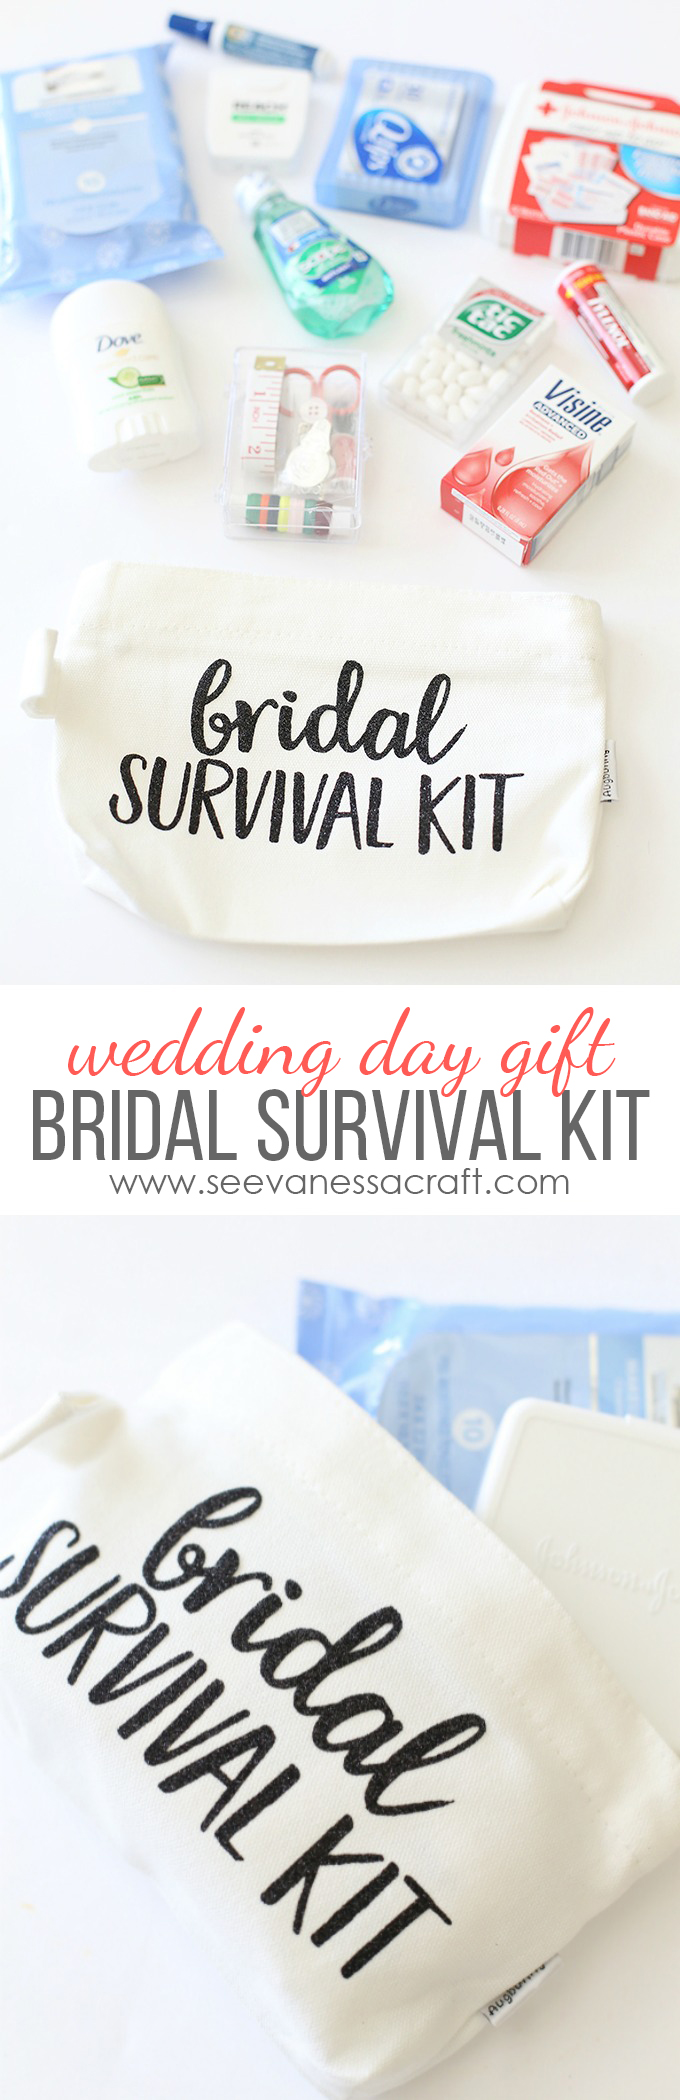 Bridal Survival Kit with Cricut Glitter Vinyl copy